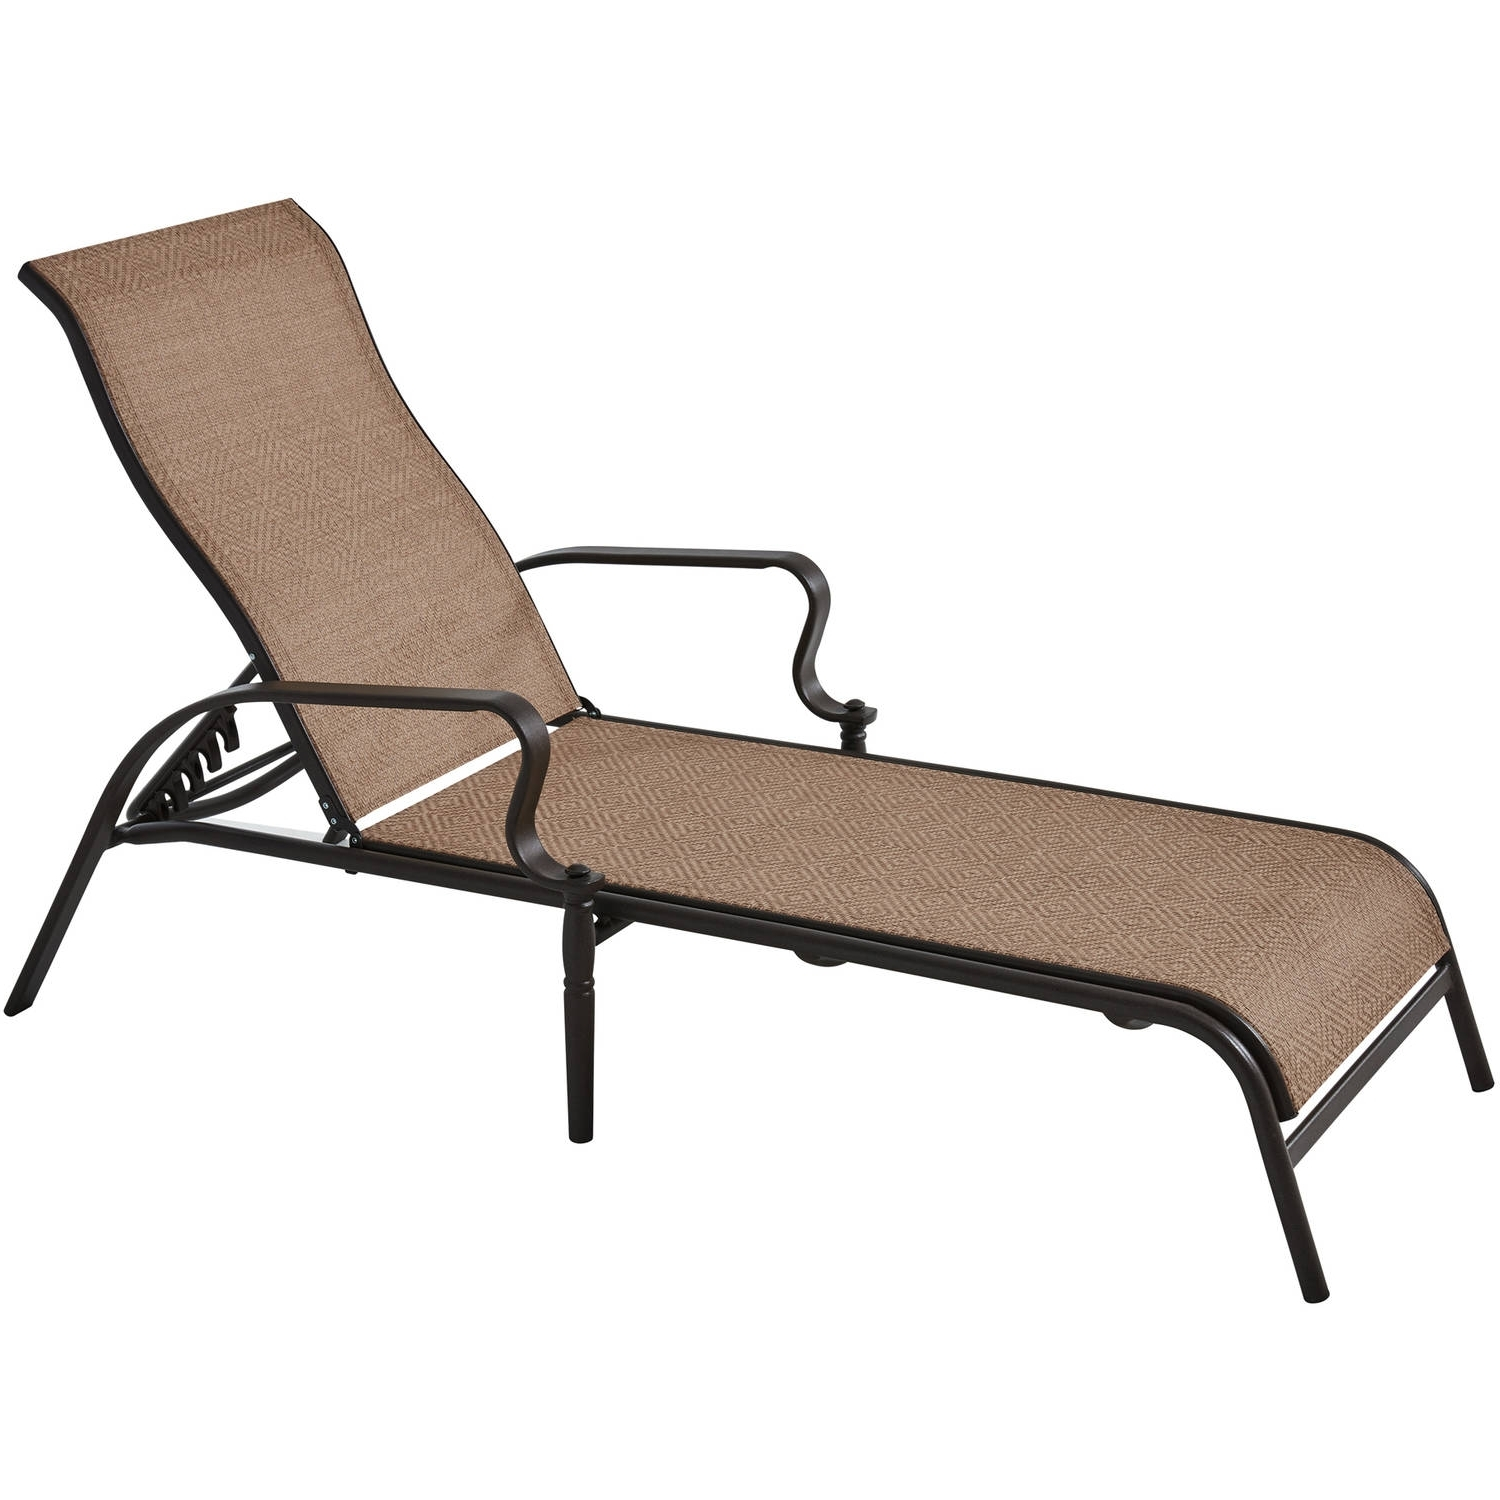 Lounge Chair : Patio Chaise Lounge Sale Chaise Furniture Portable Within Trendy Chaise Lounge Chairs At Sears (View 5 of 15)